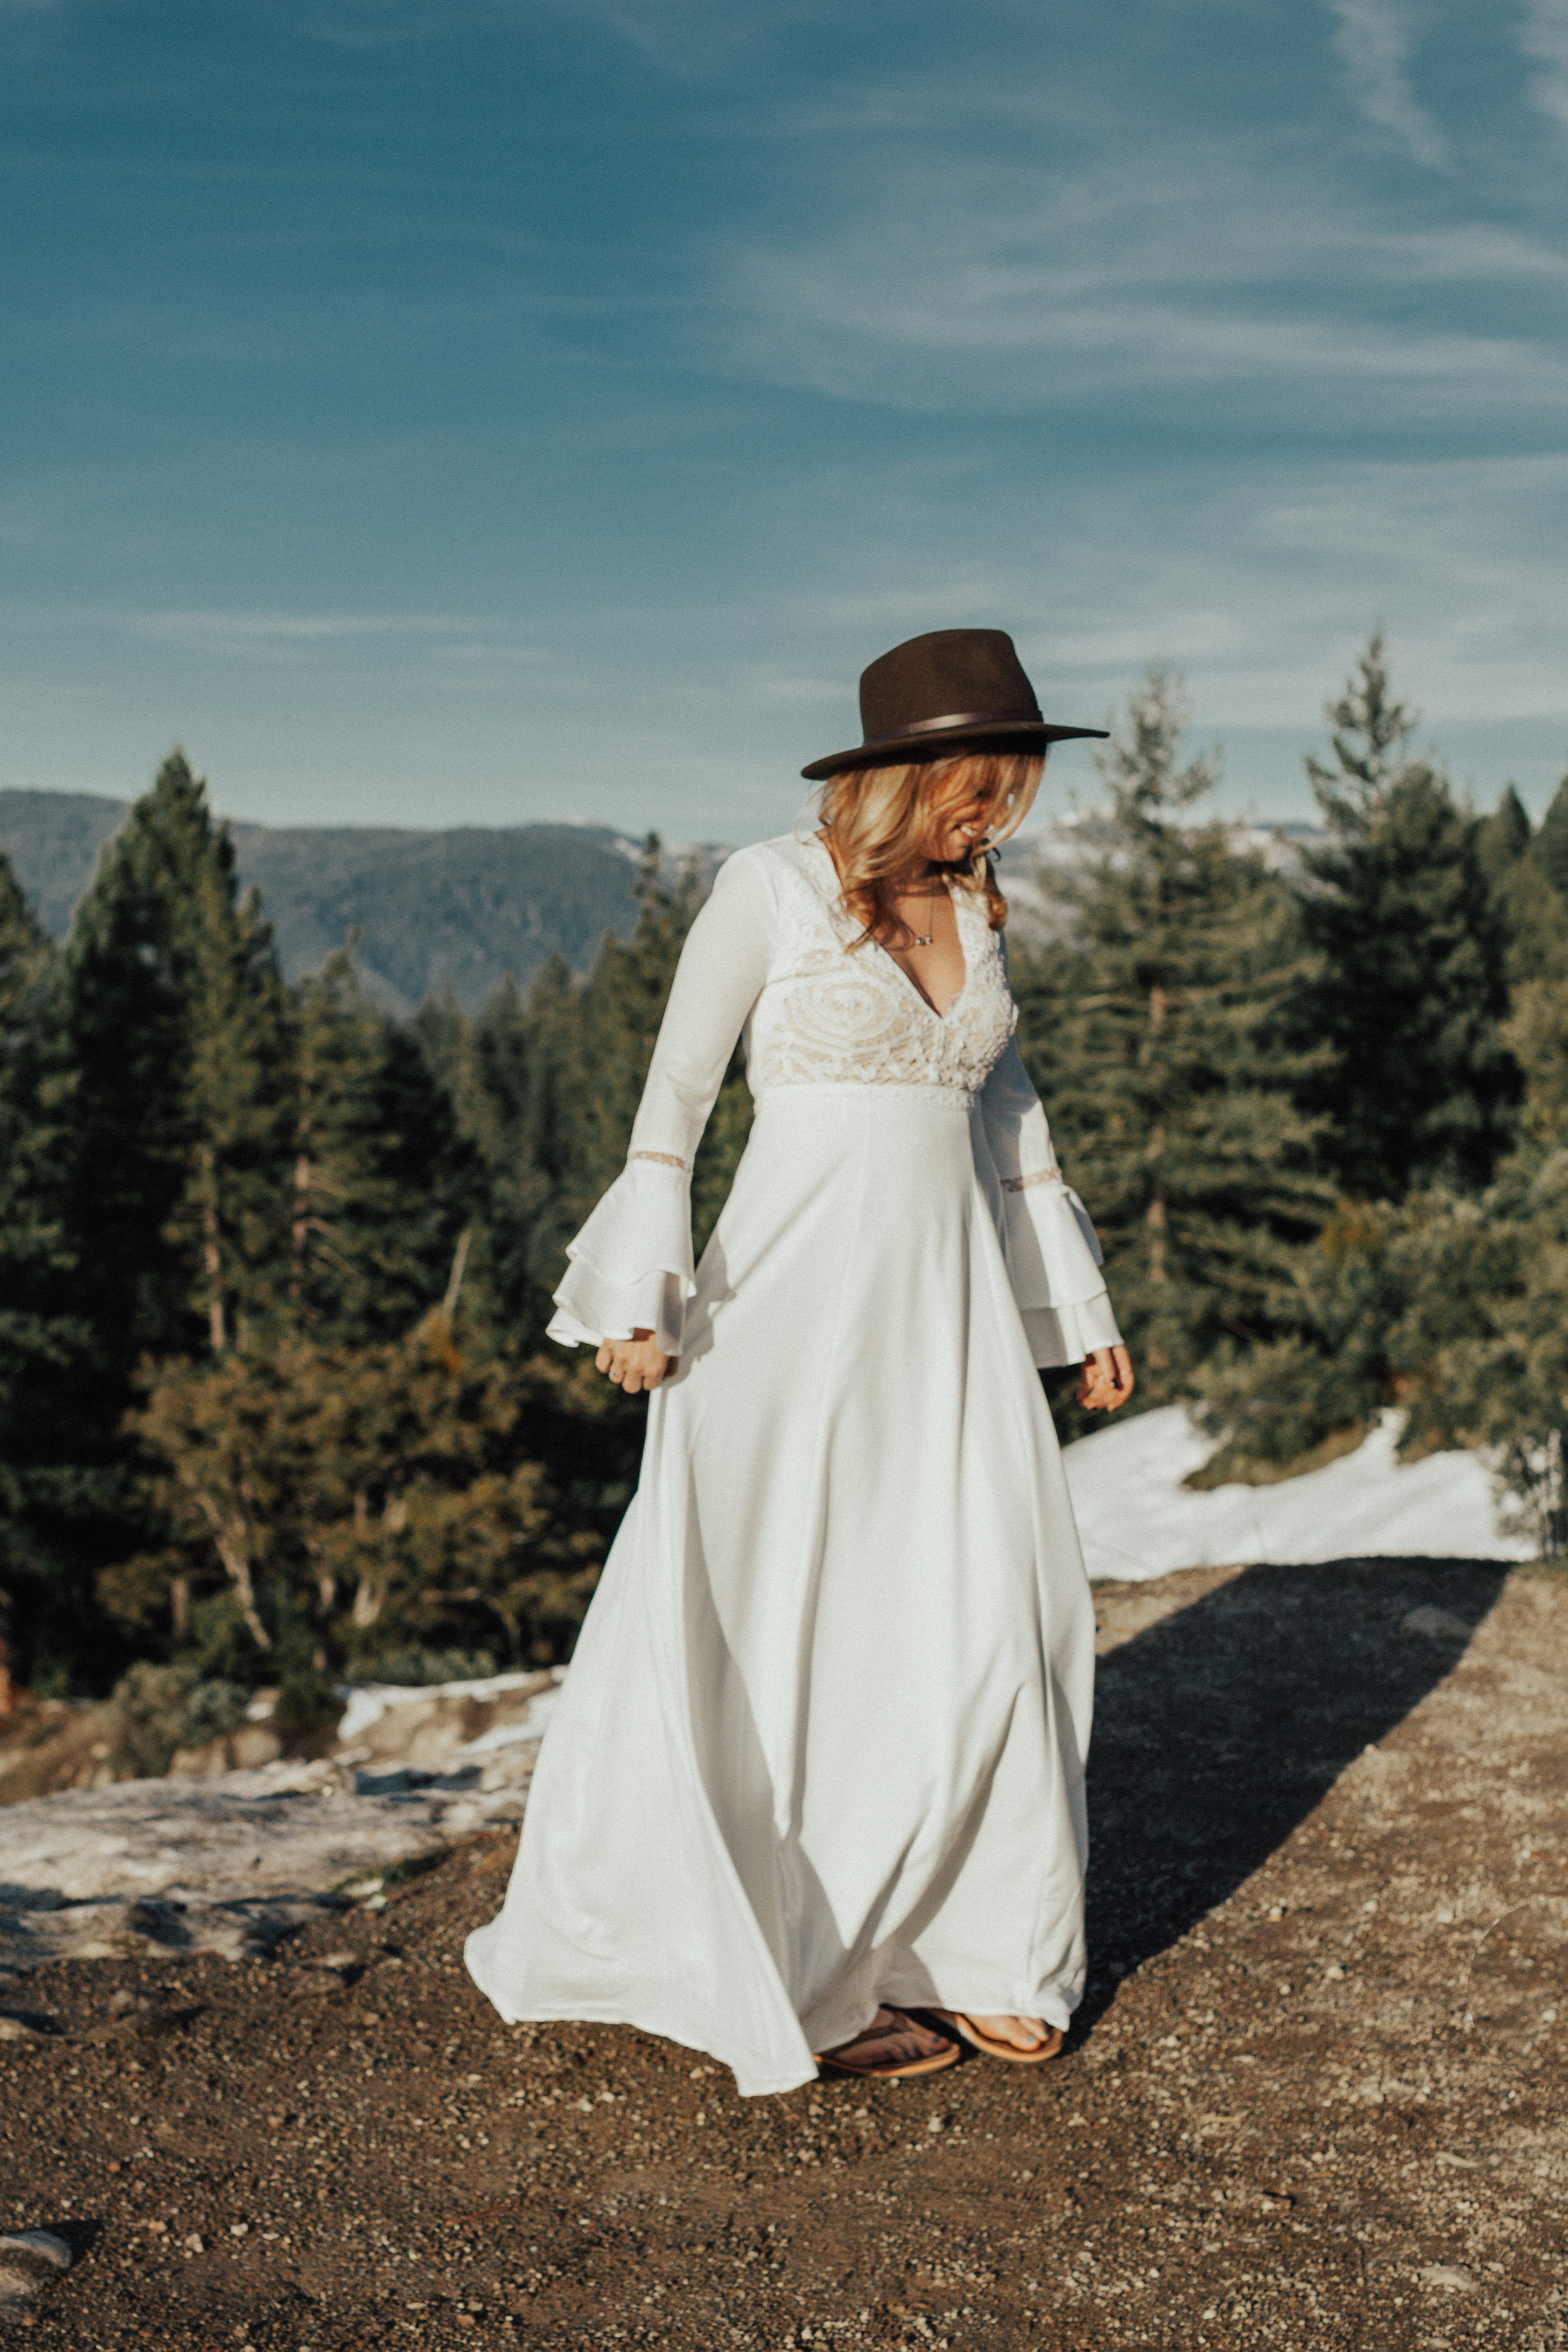 Nevada City bride twirling in her wedding gown in front of the snow capped mountains.